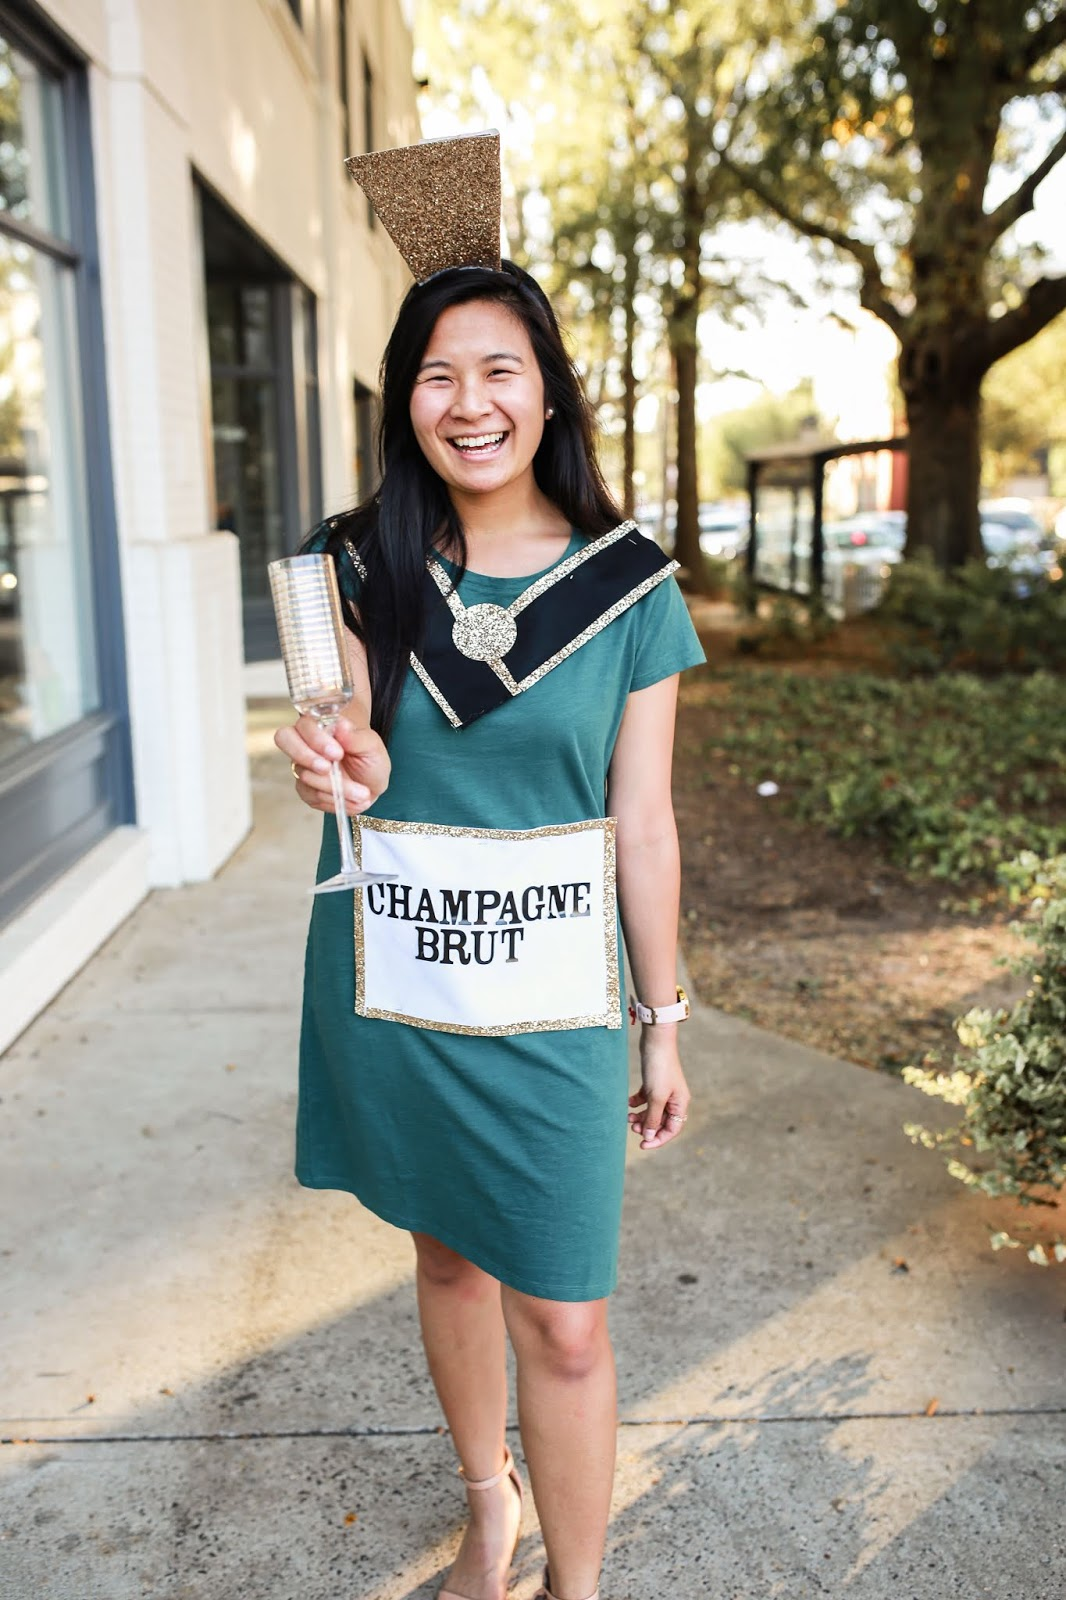 DIY Champagne Bottle Costume Idea